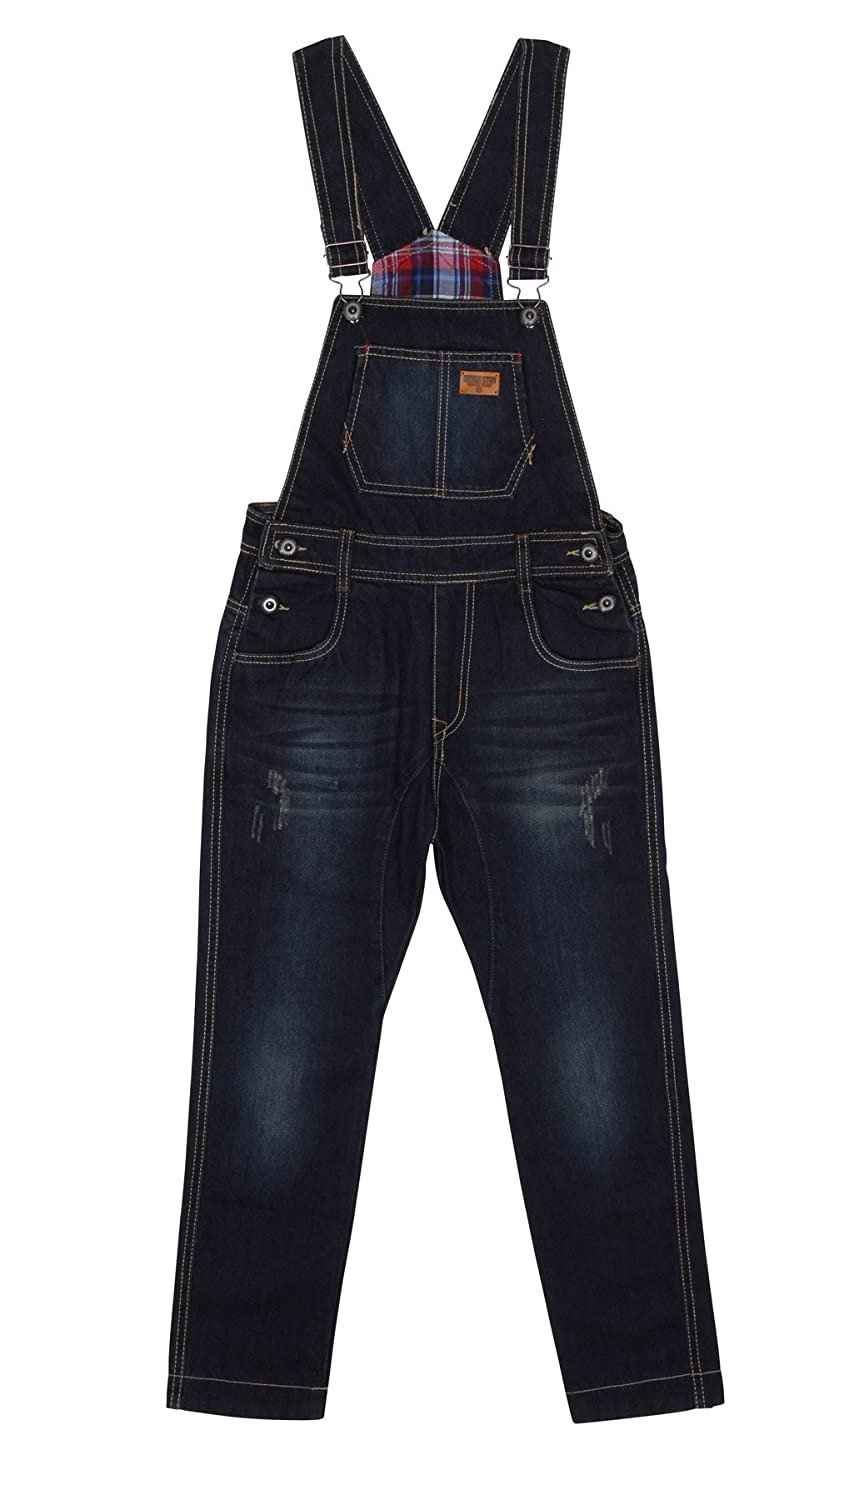 Childrens Darkwash Denim Bib Overalls Blue Slim leg dungarees age 6 8 10 12 Genius Star